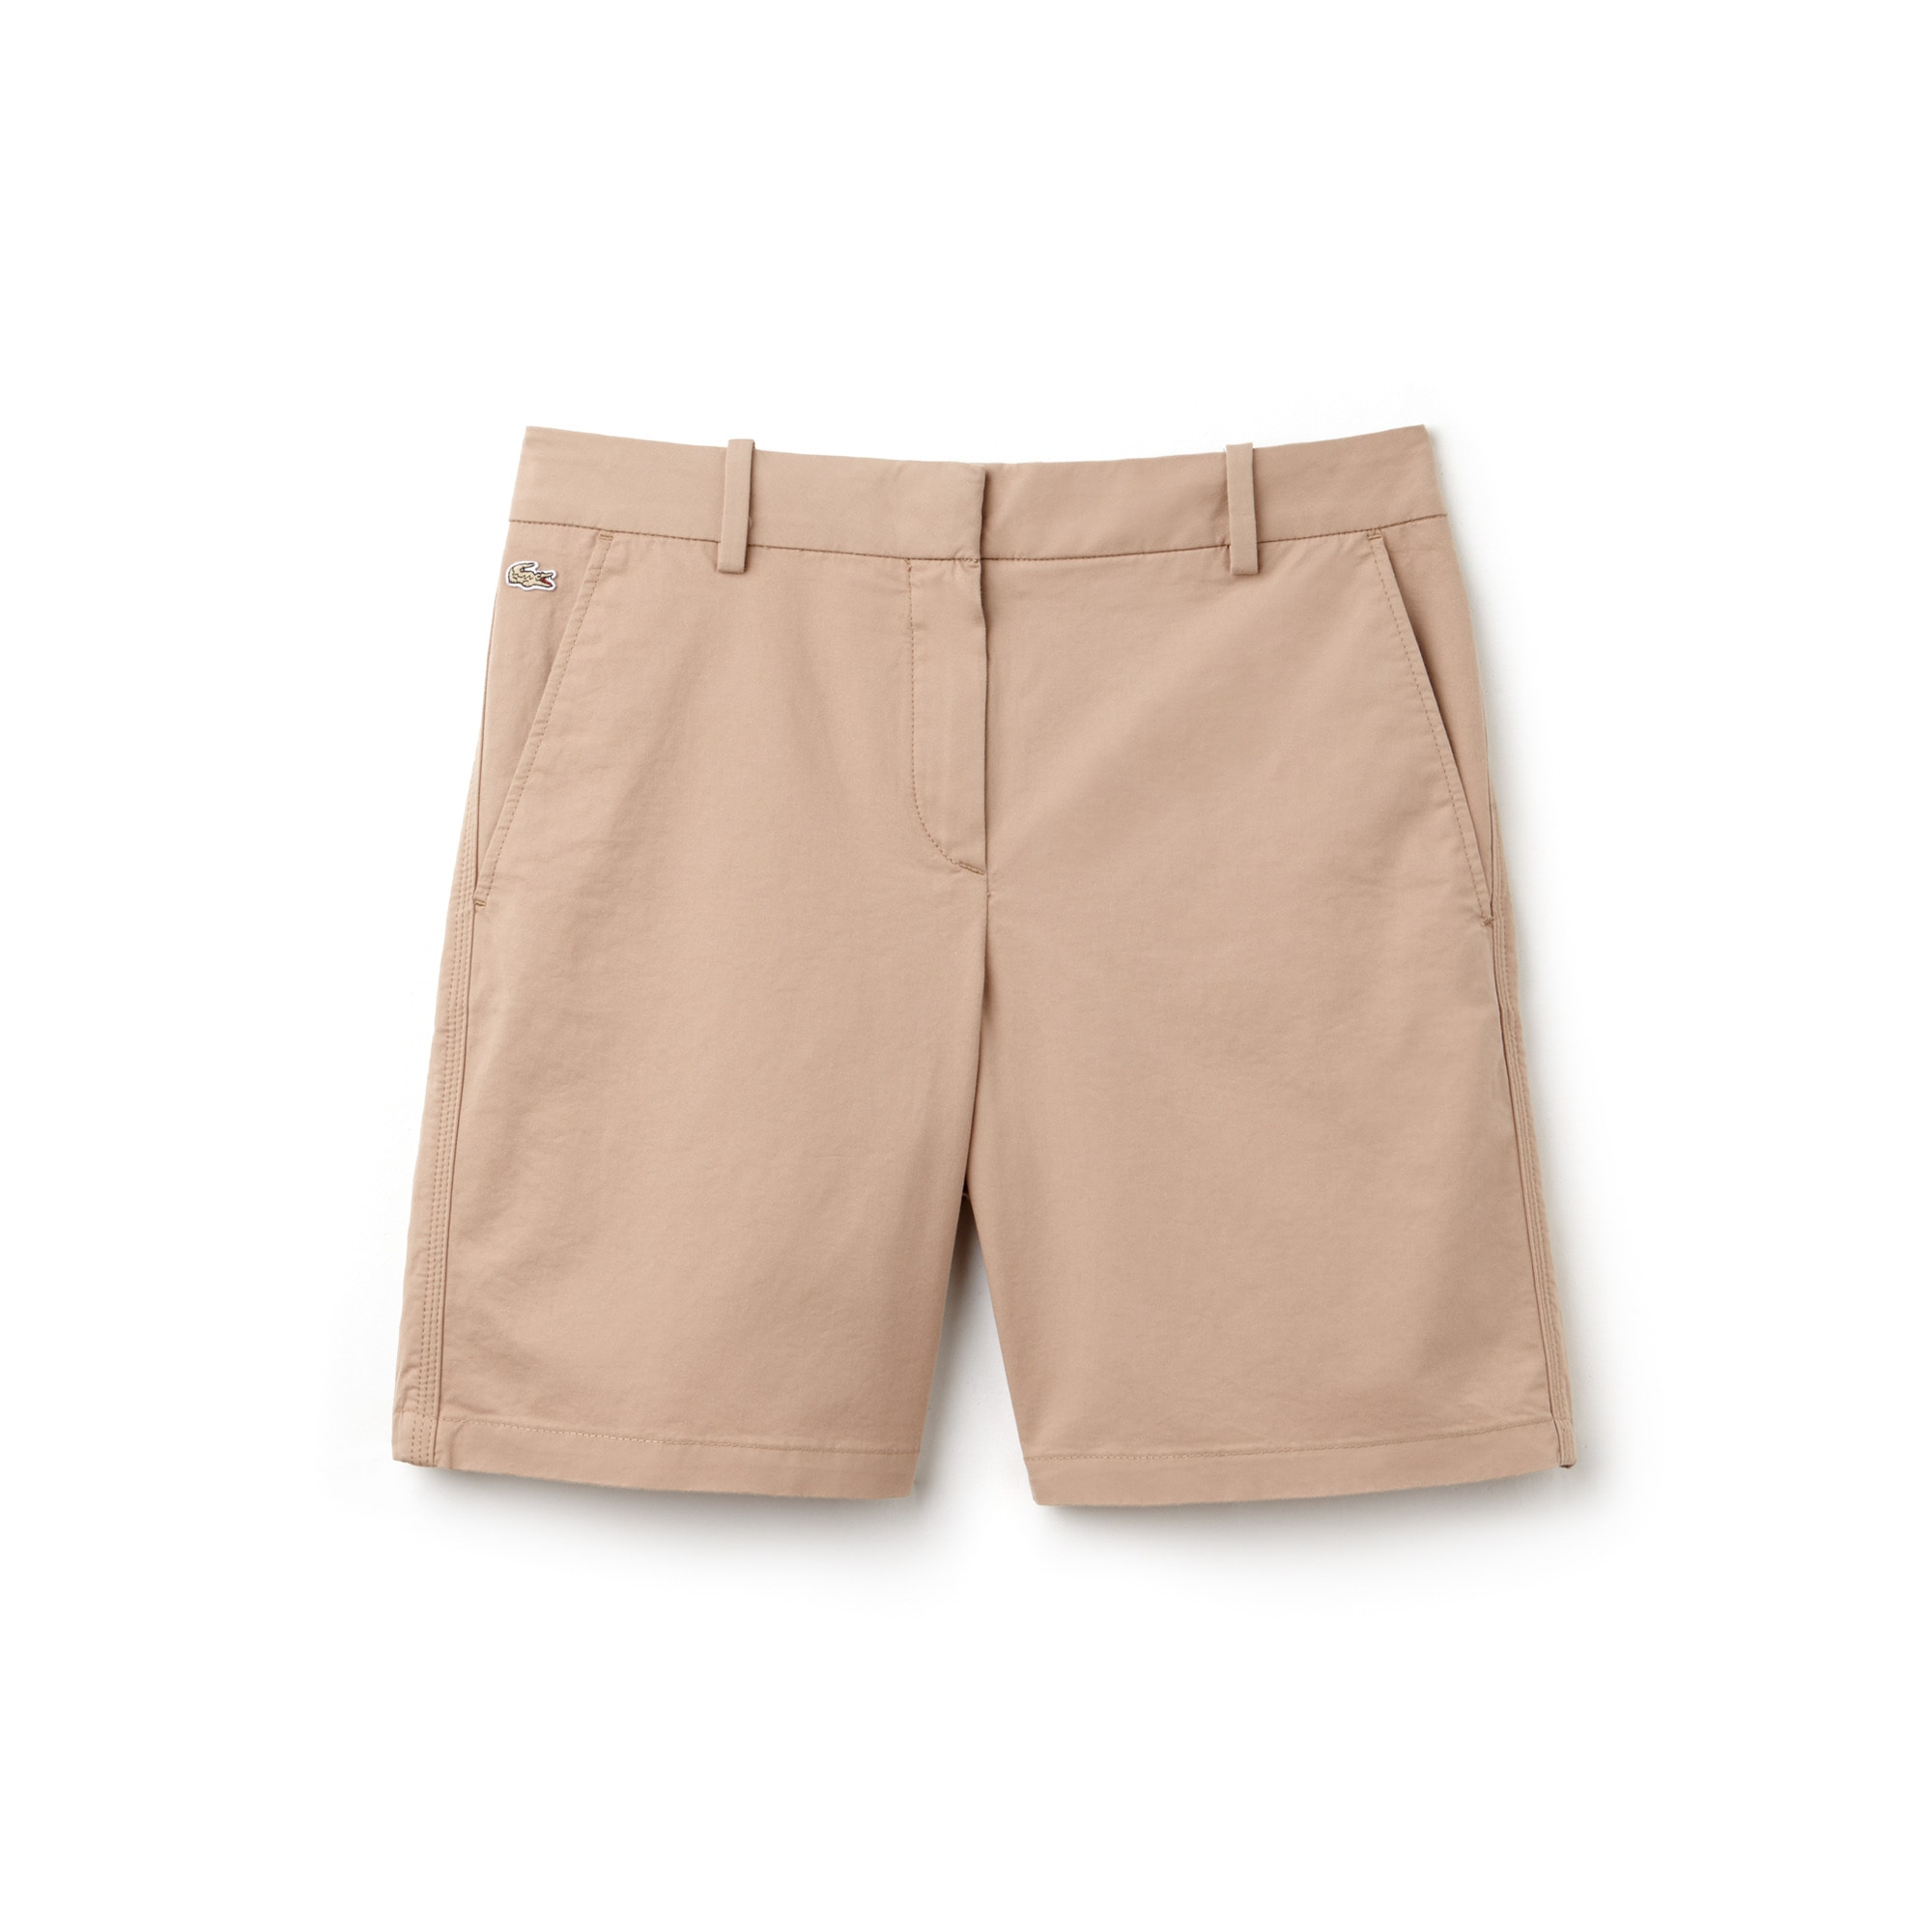 Women's Stretch Bermuda Shorts